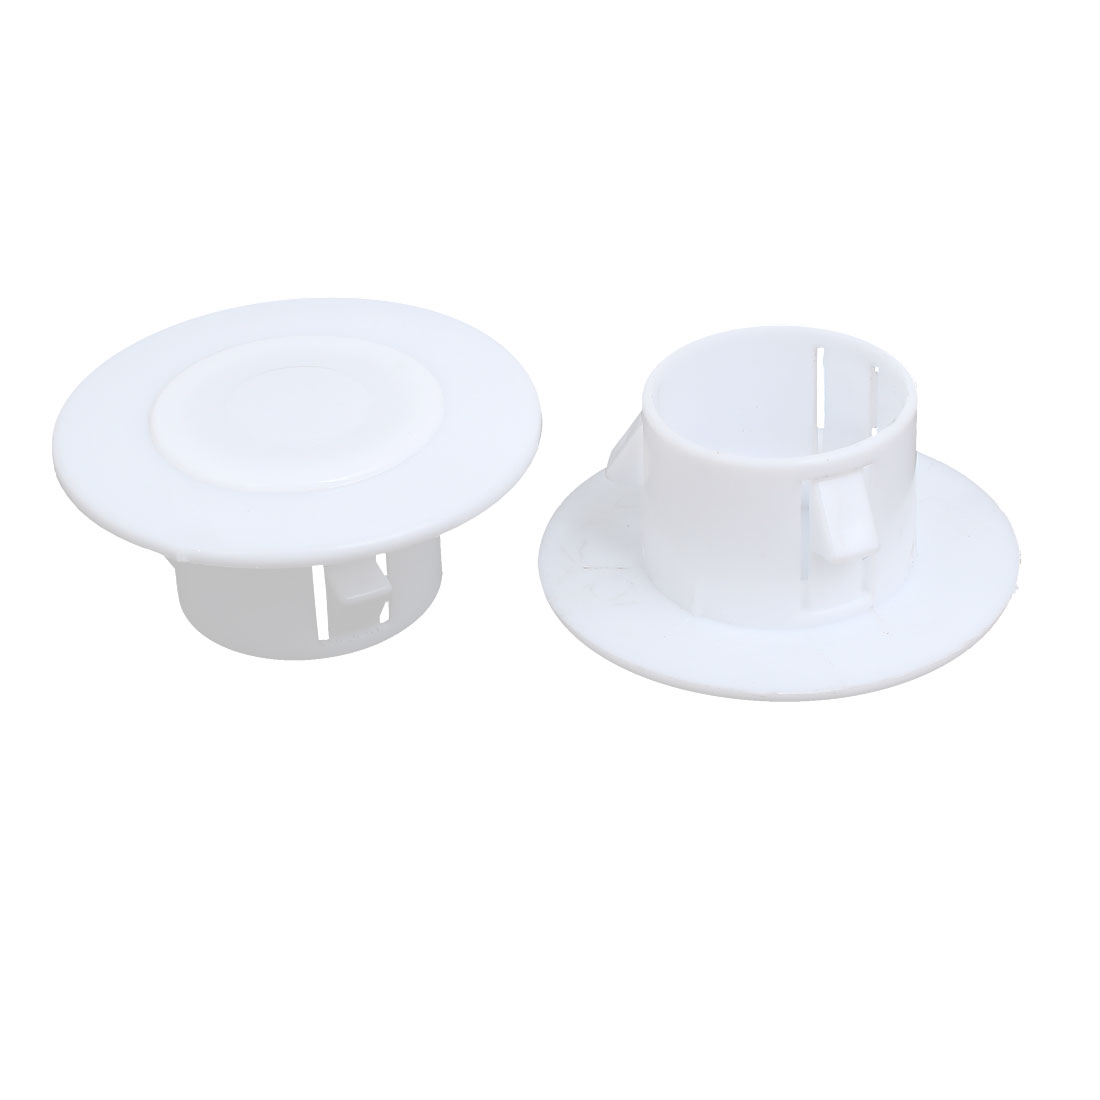 68mmx30mm Plastic Air Conditioning Wall Hole Cover White